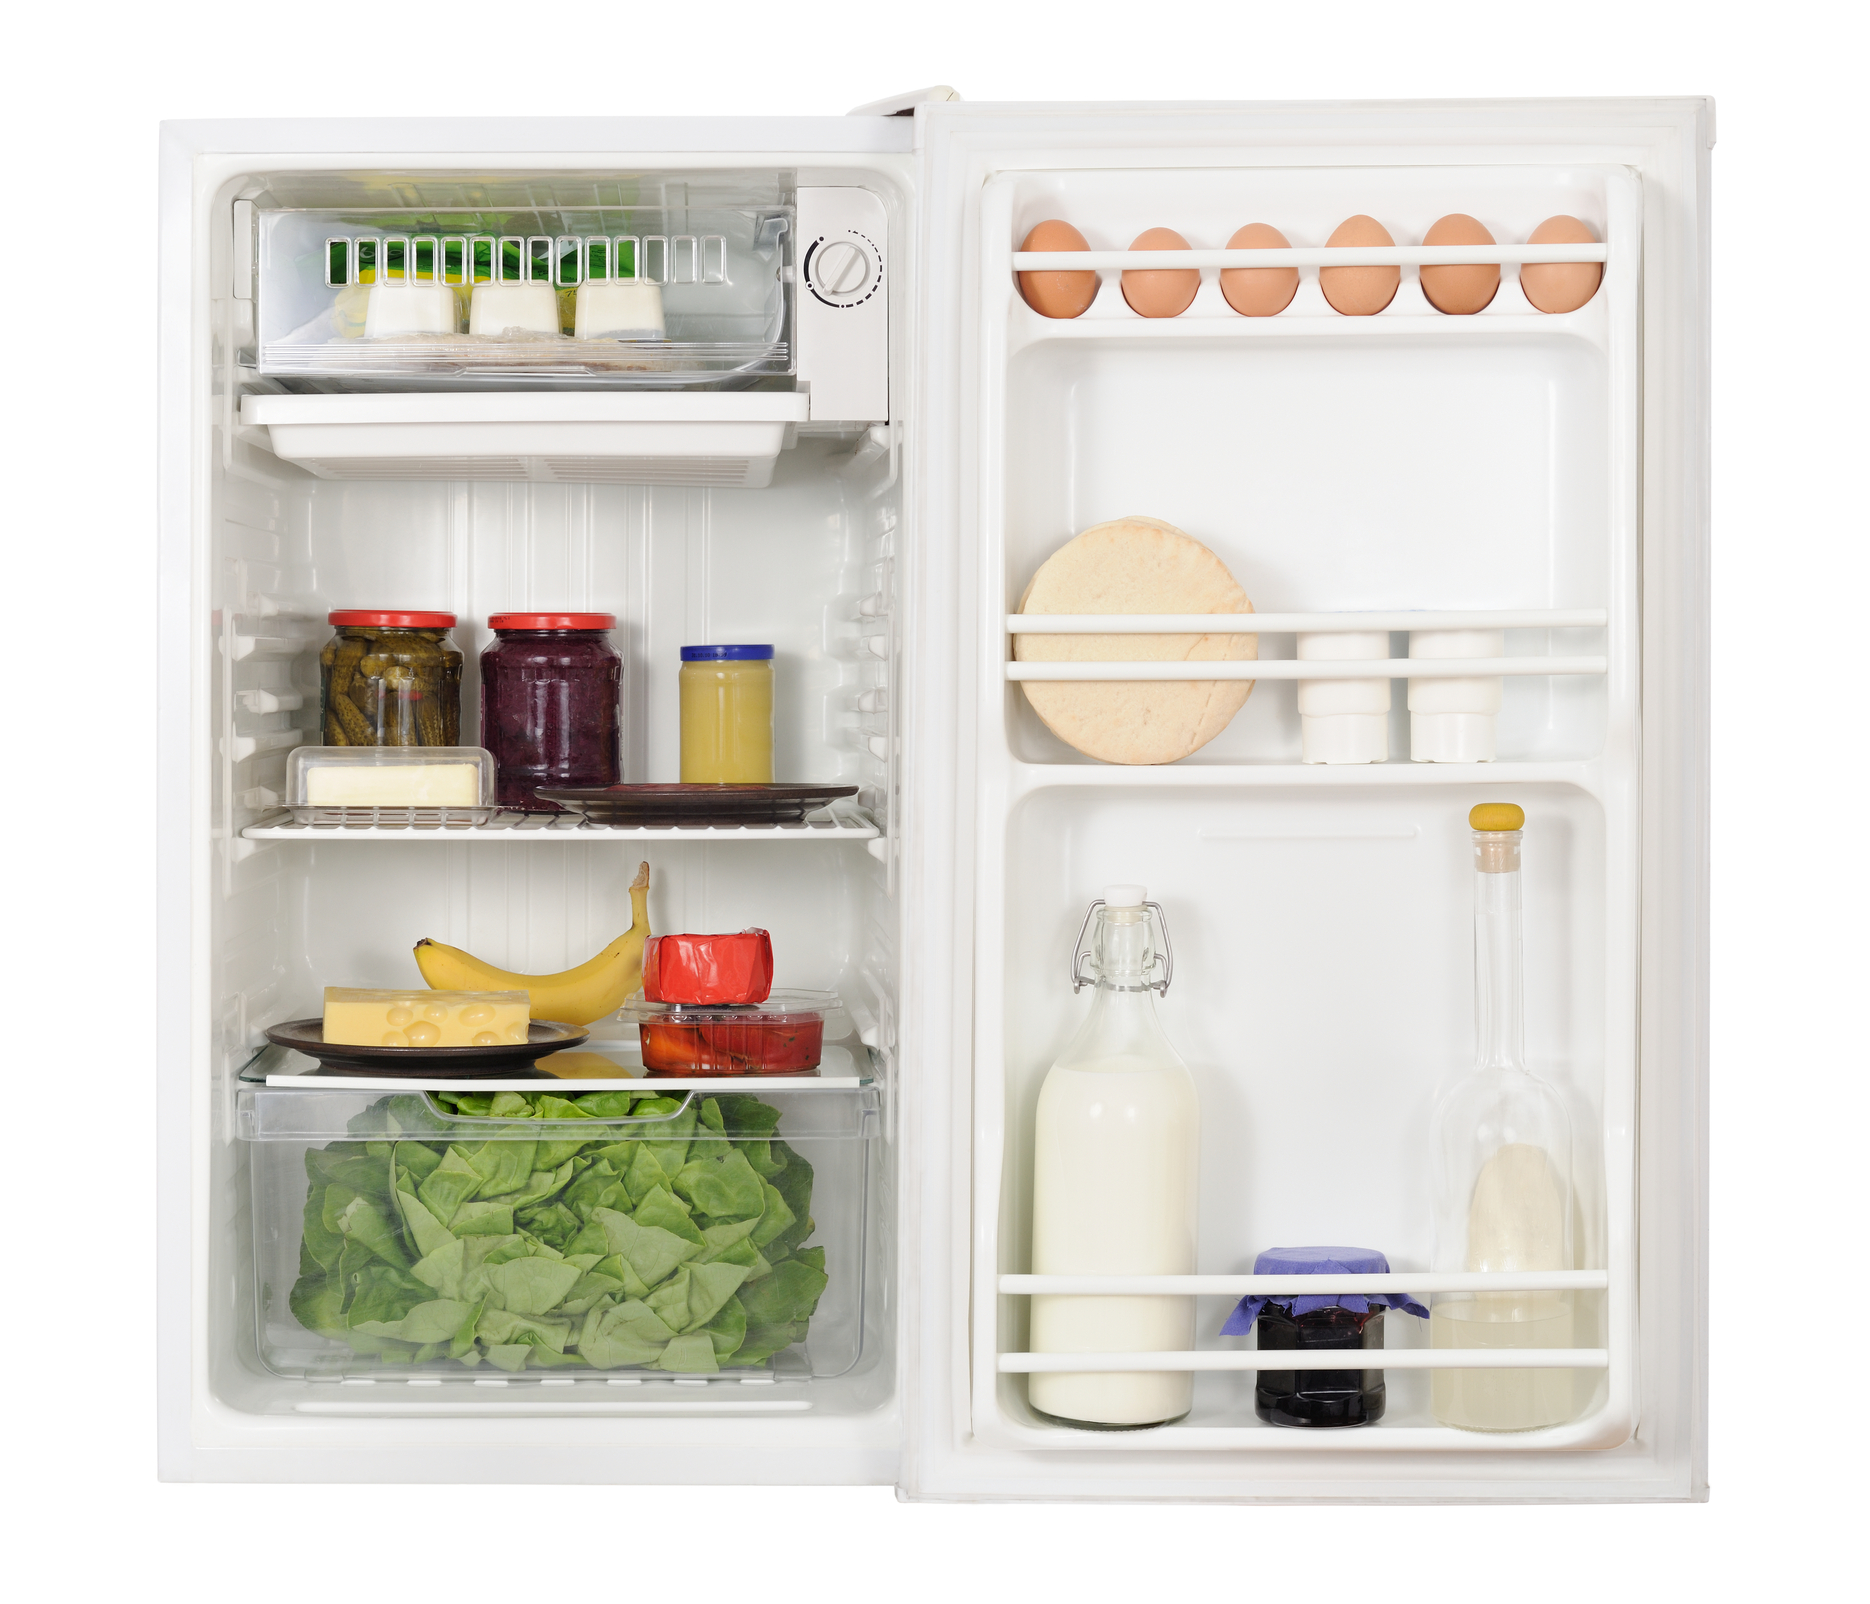 What Does Your Acupuncturist Eat? A Look Inside Laurel's Refrigerator